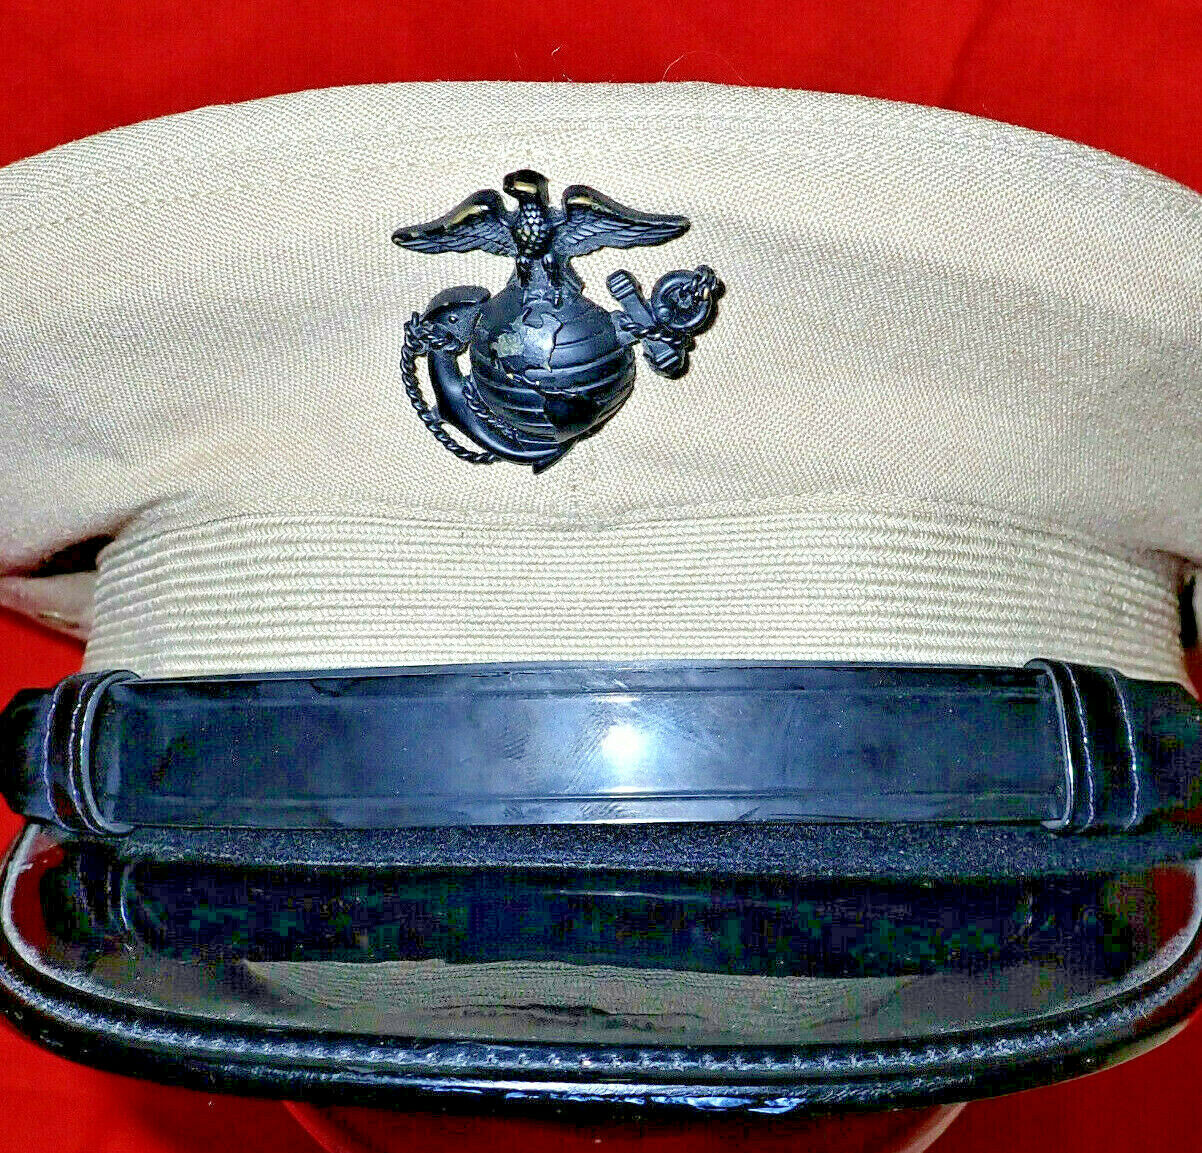 1960's US MARINE CORPS VIETNAM WAR PERIOD OFFICERS UNIFORM PEAKED CAP